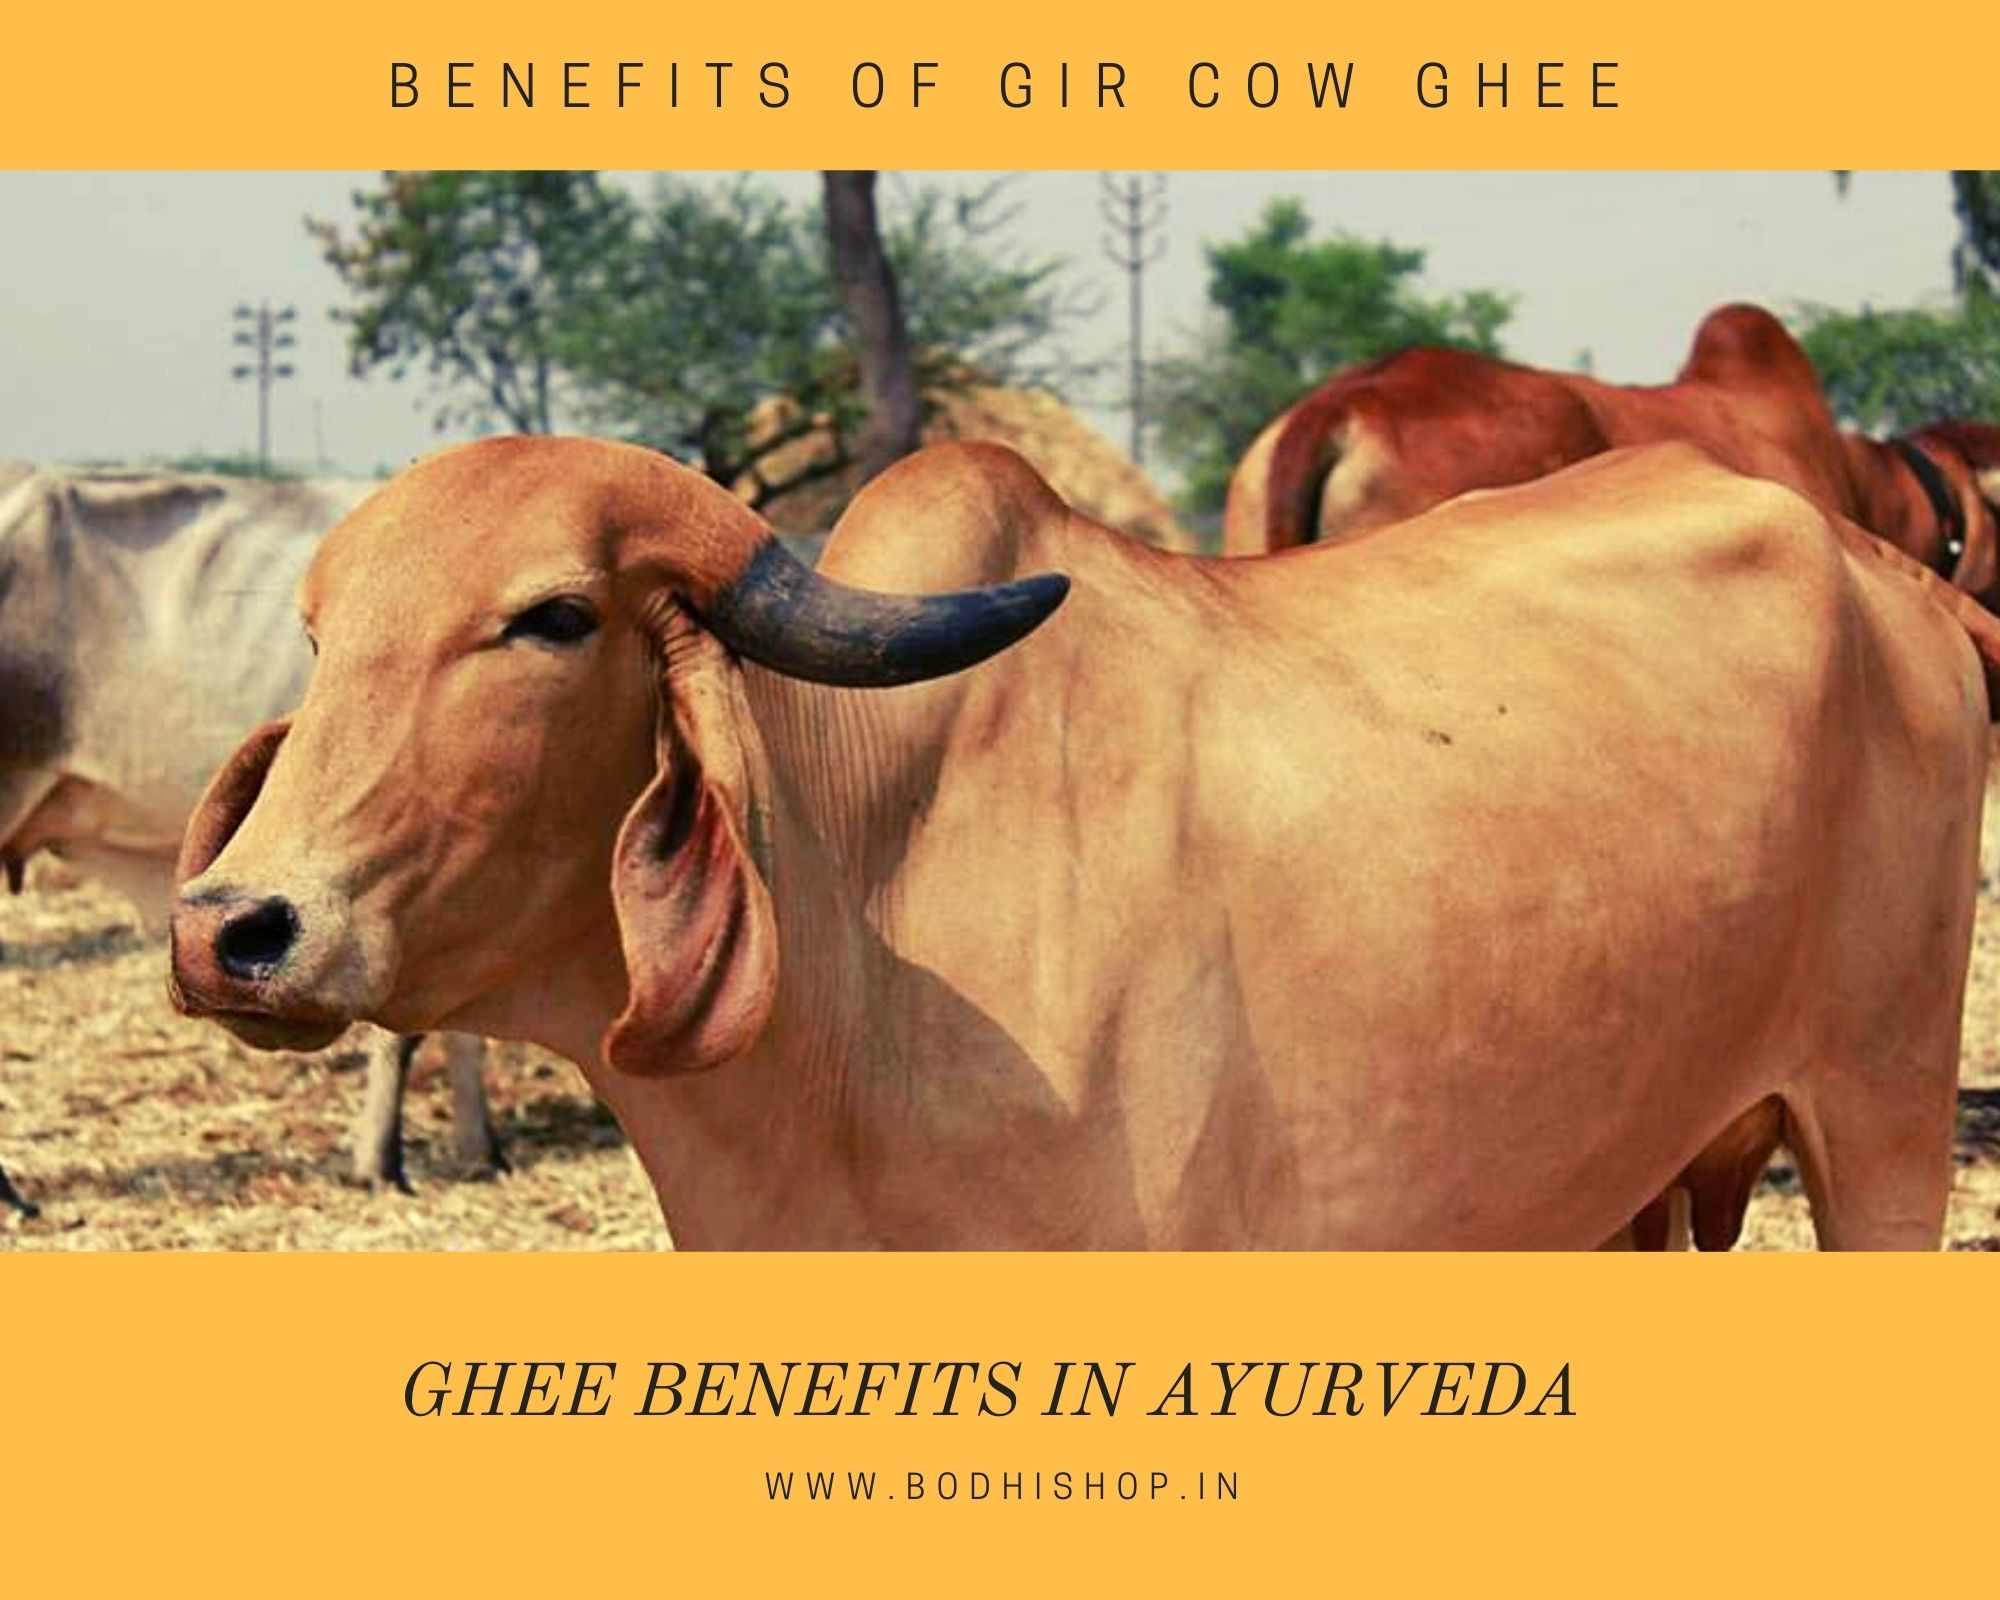 Benefits of Gir Cow Ghee in Ayurveda